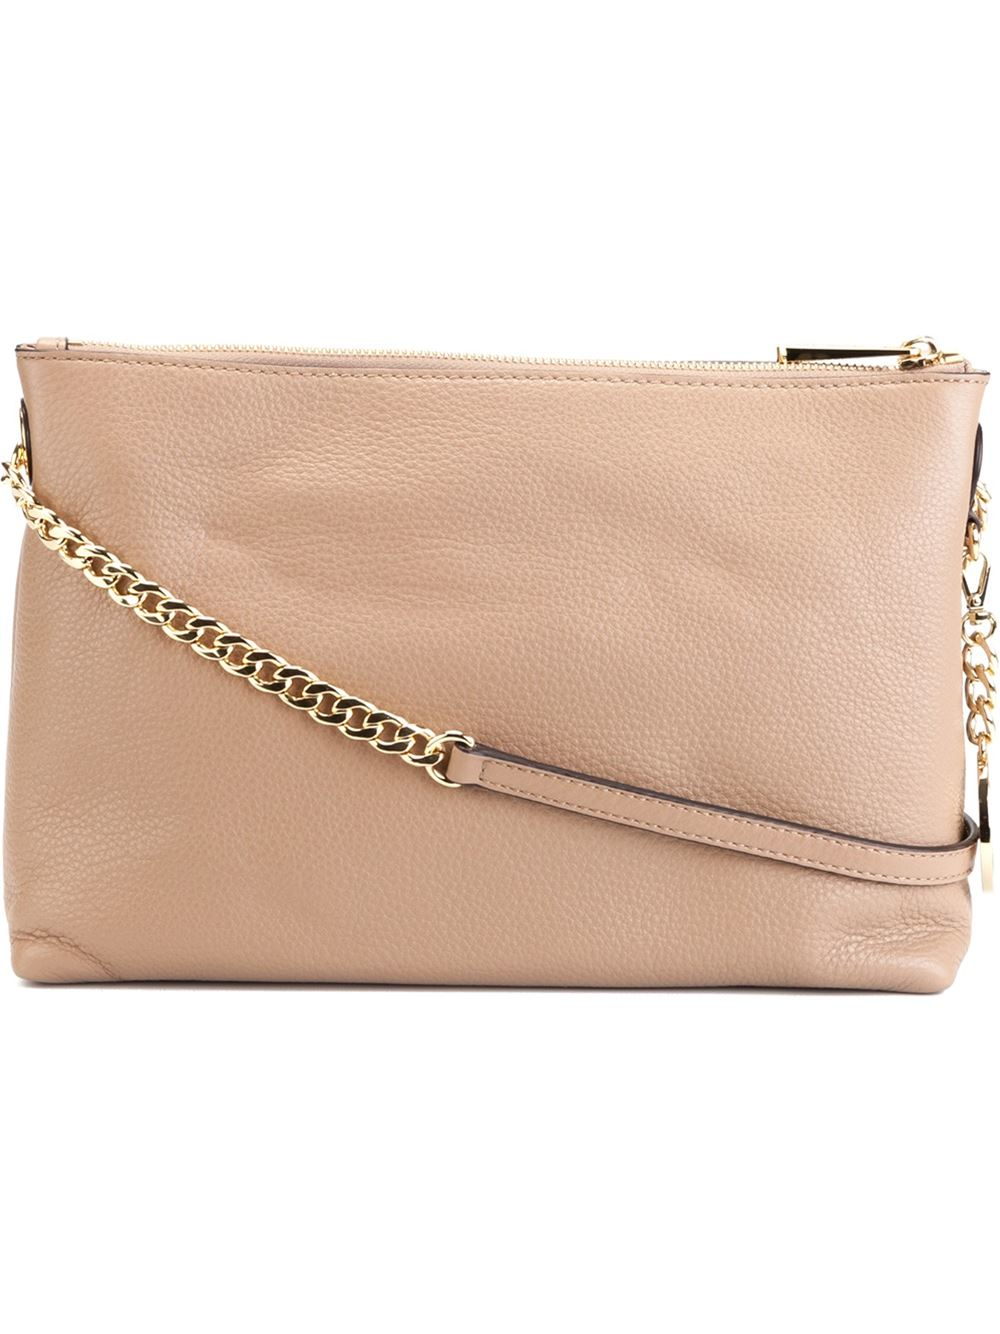 5f2d138ab32 MICHAEL Michael Kors Logo-Charm Leather Cross-Body Bag in Natural - Lyst